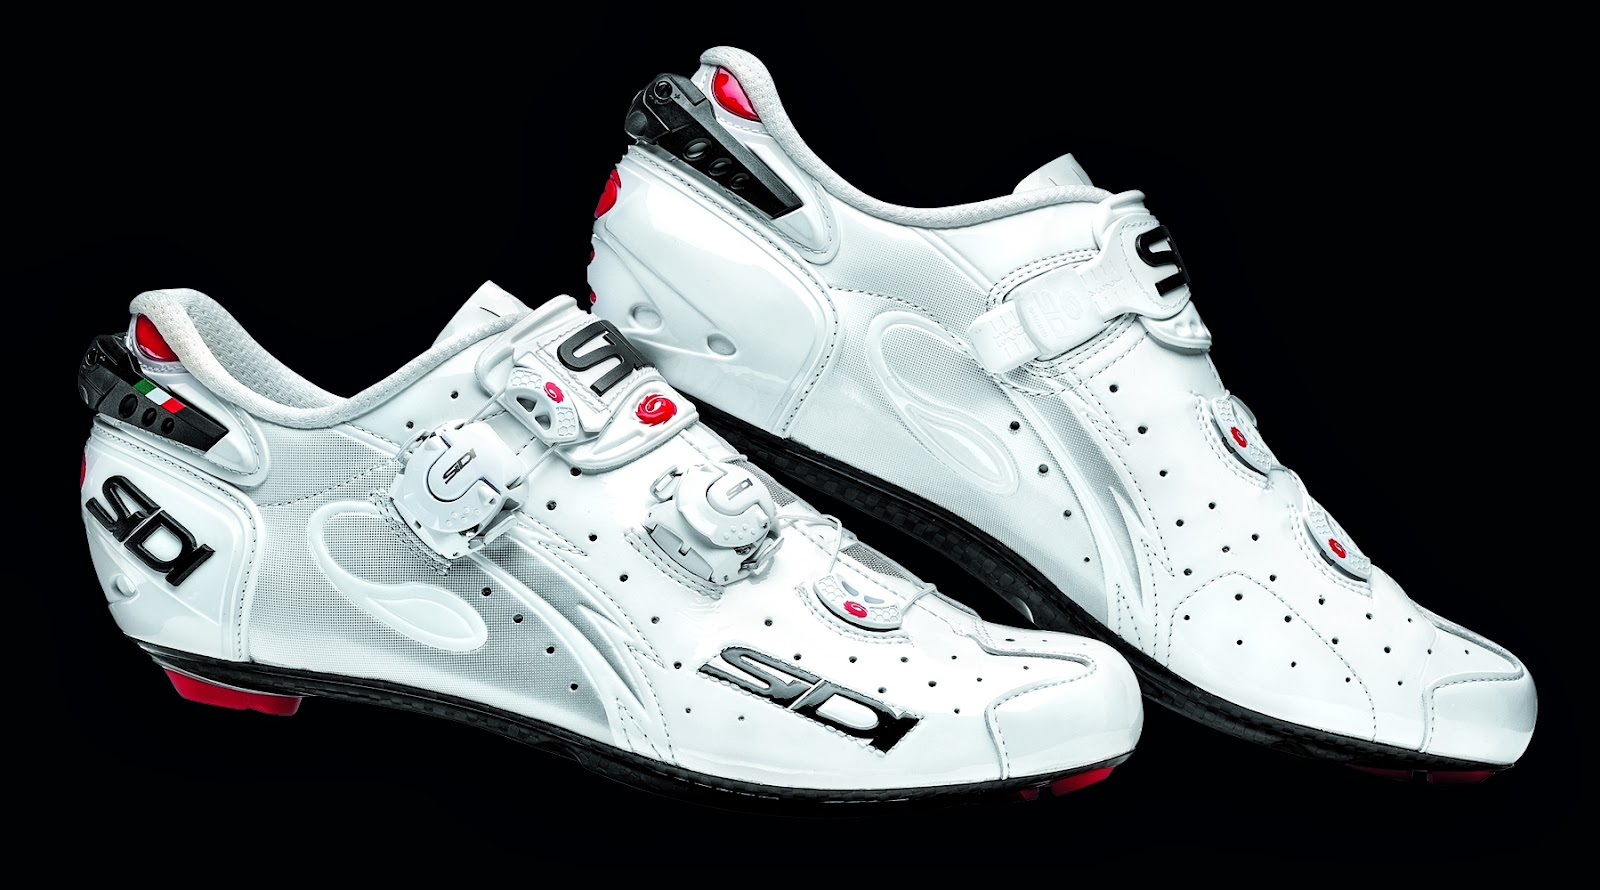 Veloruck Sidi Wire Carbon De La Haute Couture